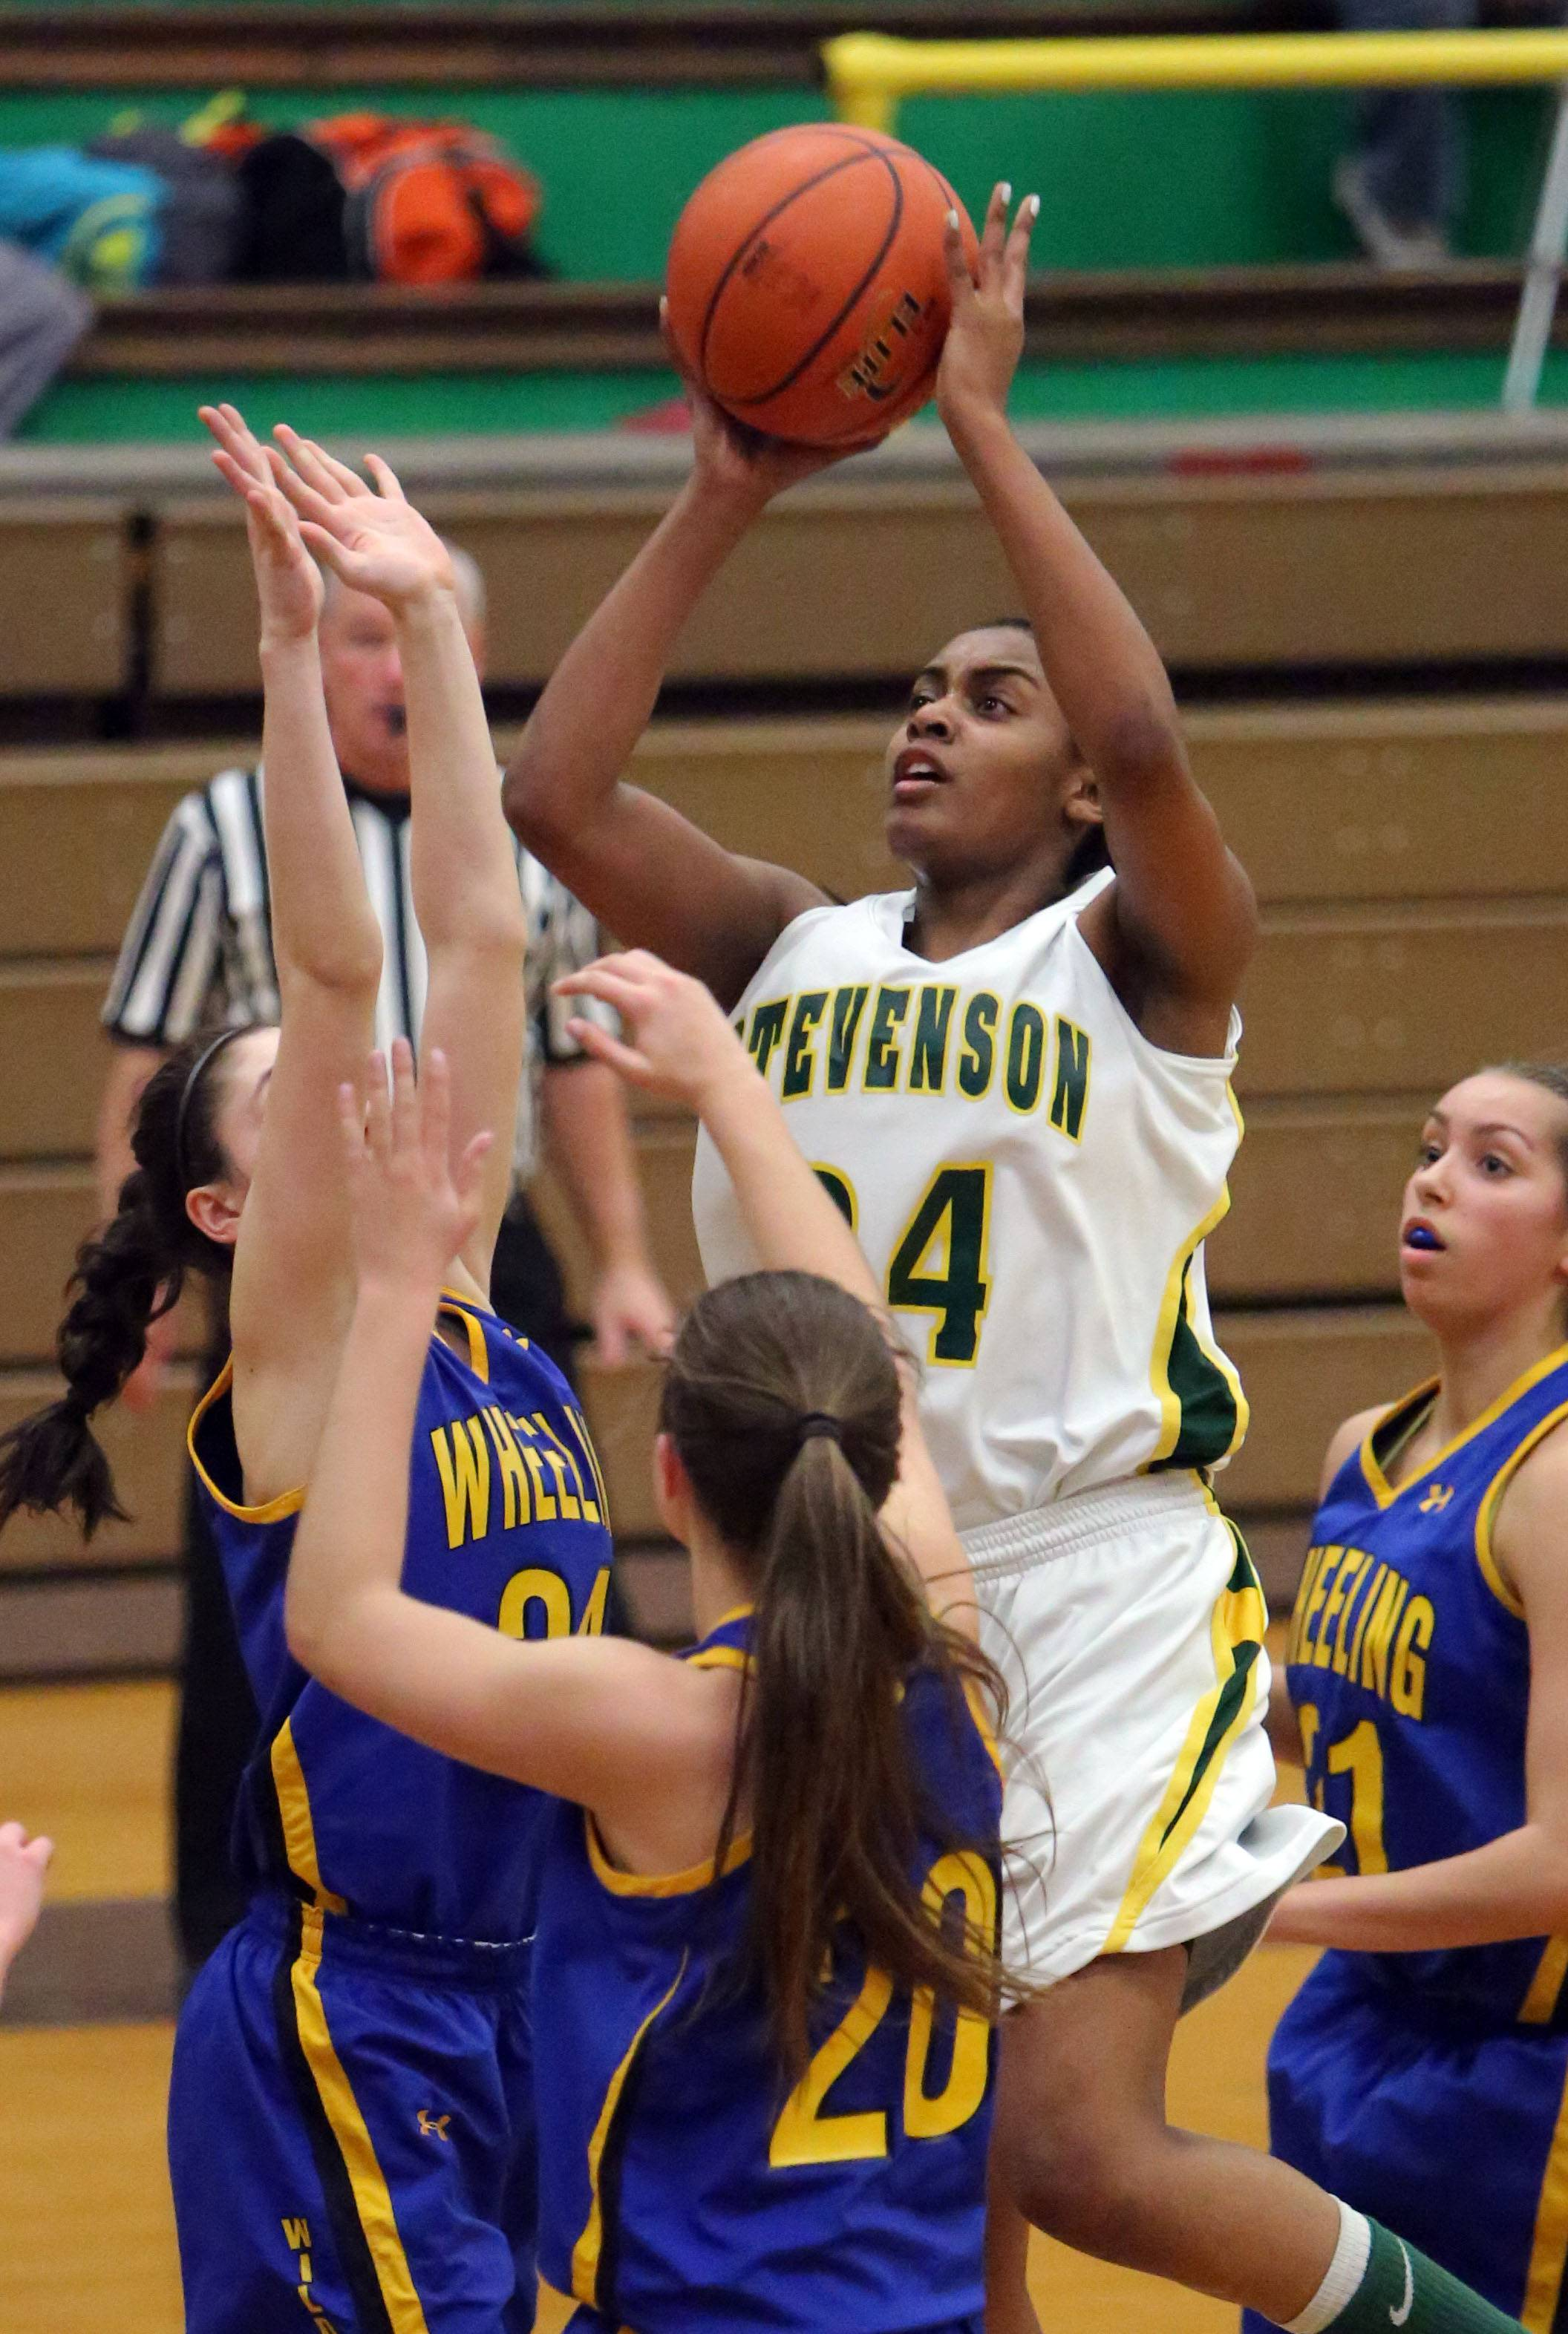 Stevenson's Taylor Buford, right, shoots over Wheeling's Melissa Claver and Elizabeth Smith.